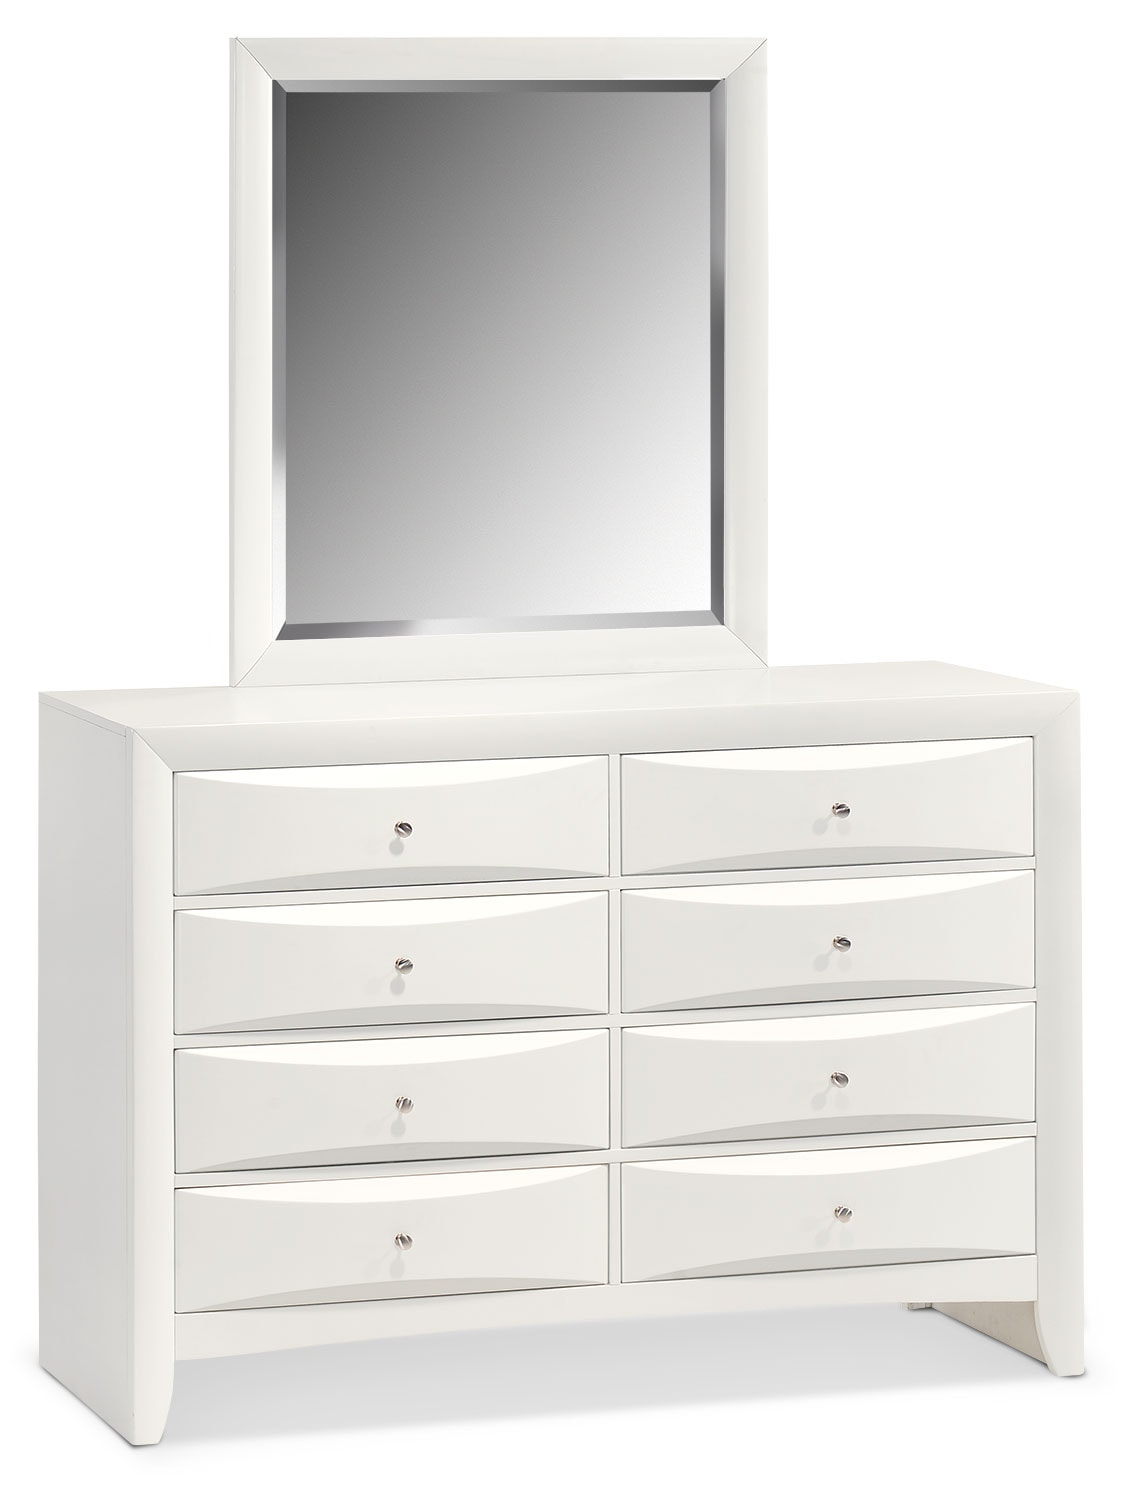 braden dresser and mirror white value city furniture. Black Bedroom Furniture Sets. Home Design Ideas